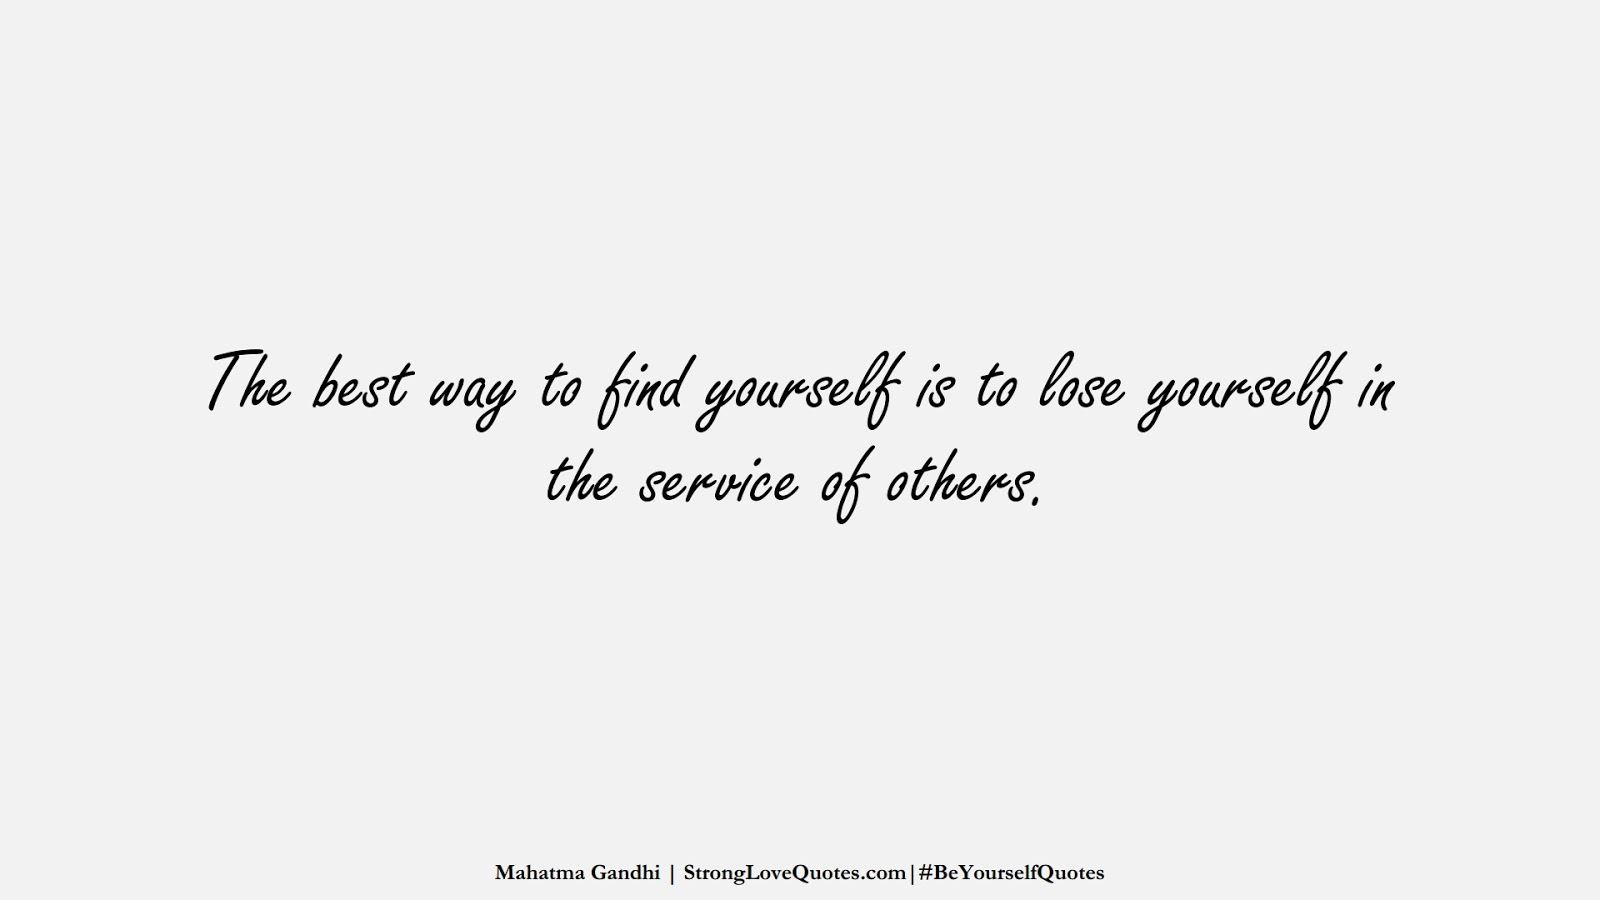 The best way to find yourself is to lose yourself in the service of others. (Mahatma Gandhi);  #BeYourselfQuotes